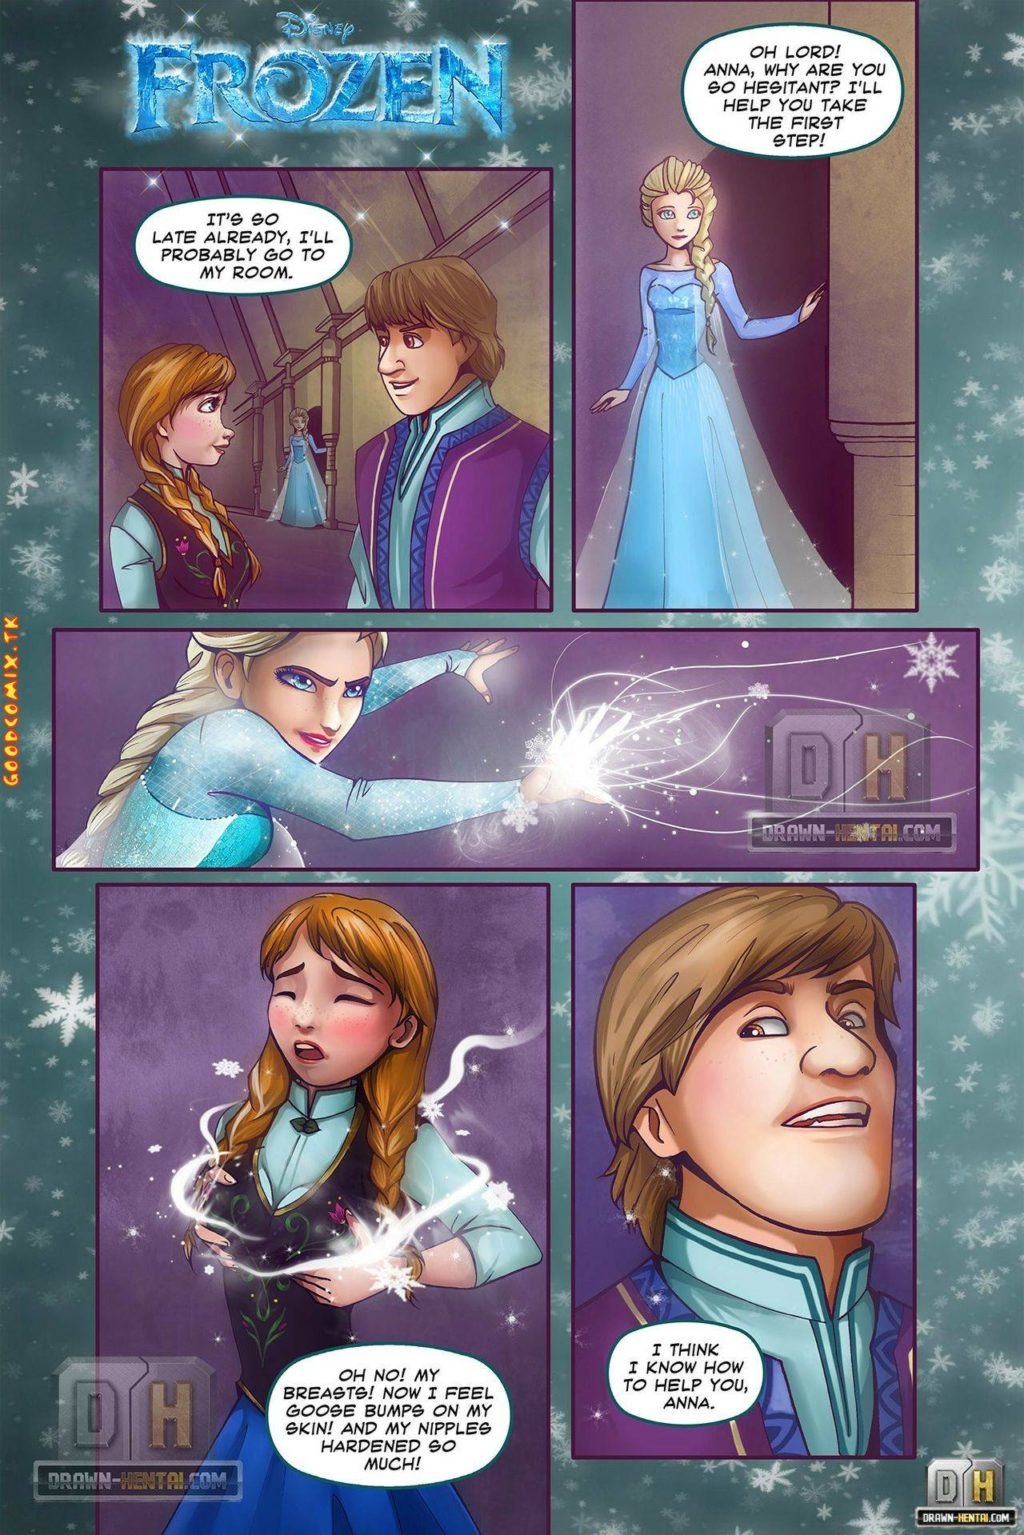 Comic-Condom-Cartoon-Porn-Hentai-manga-Disney-Princess-lesbian-Frozen-Threesome-Elsa-Full-Color-famous-characters